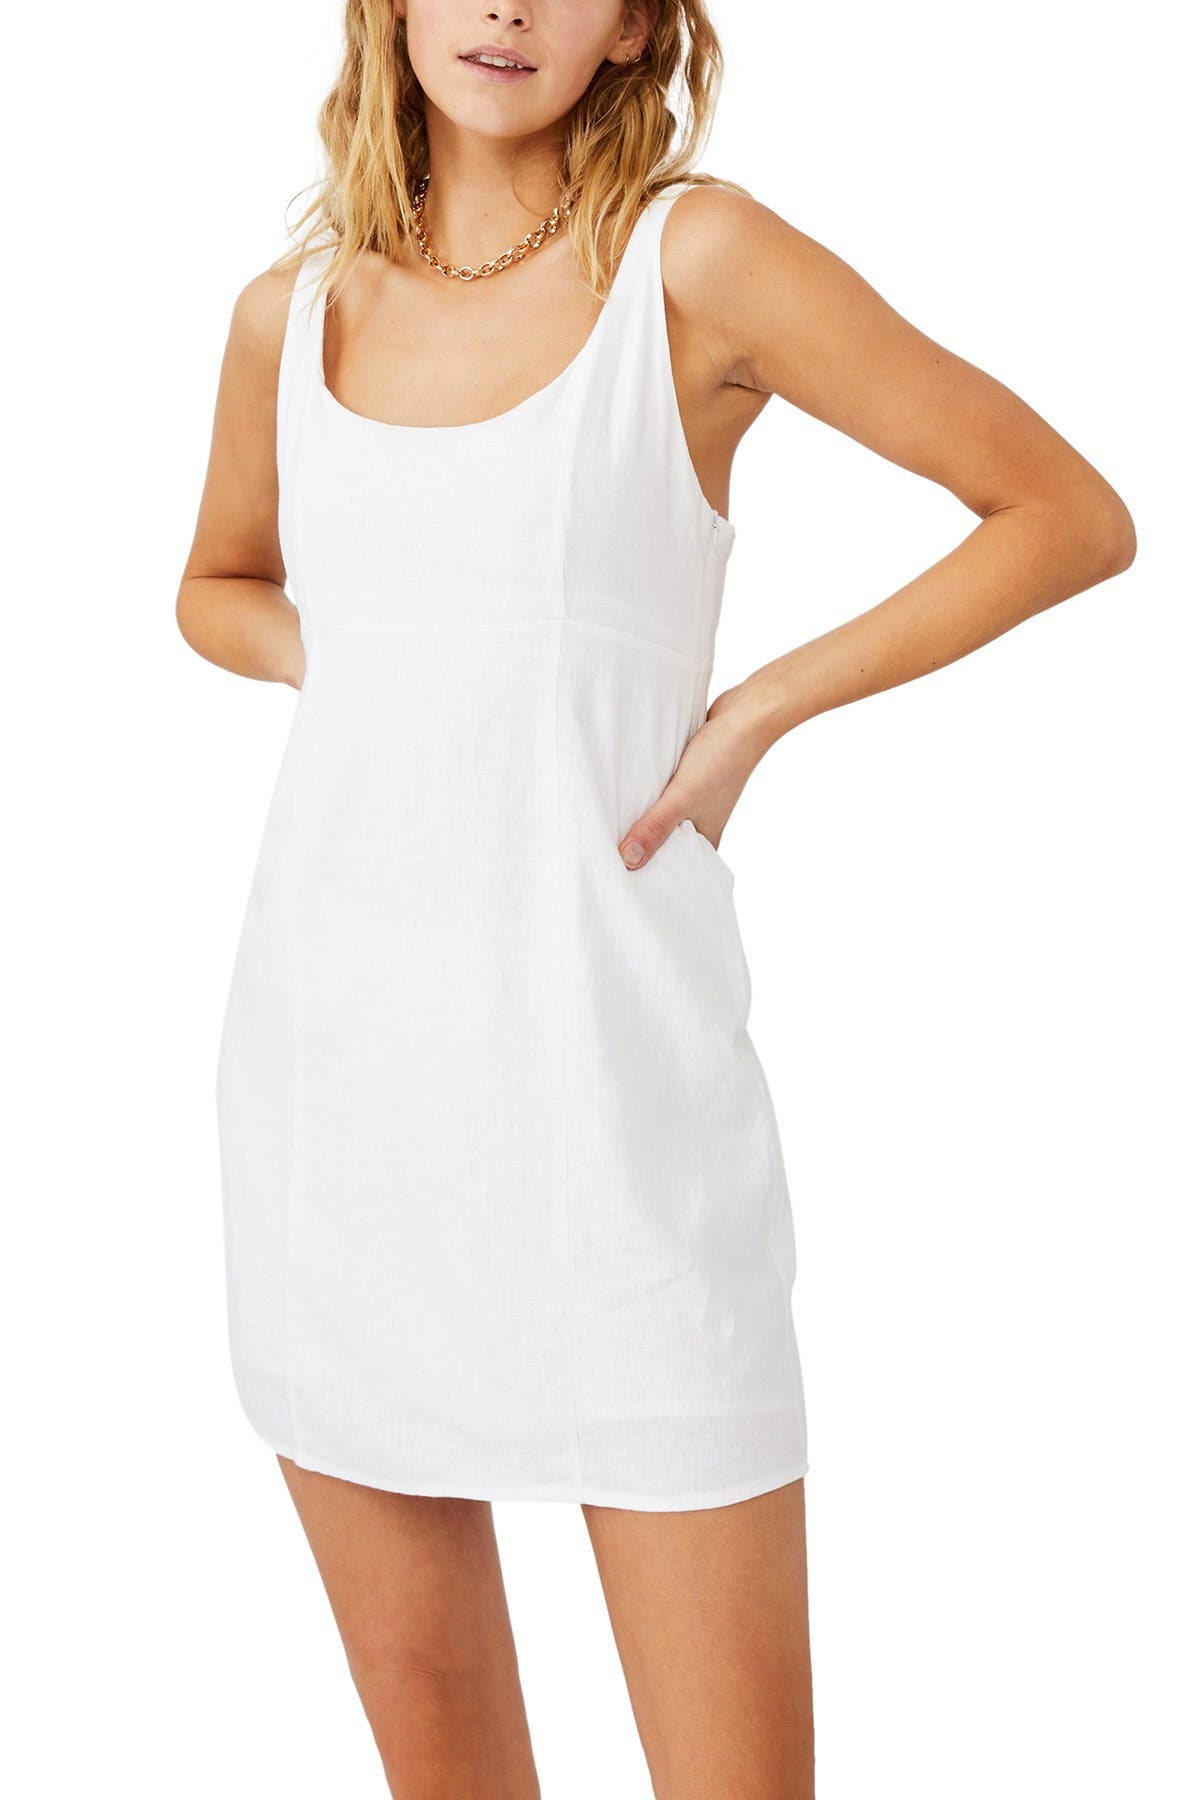 Image of Cotton On Woven Libby Strappy Mini Dress